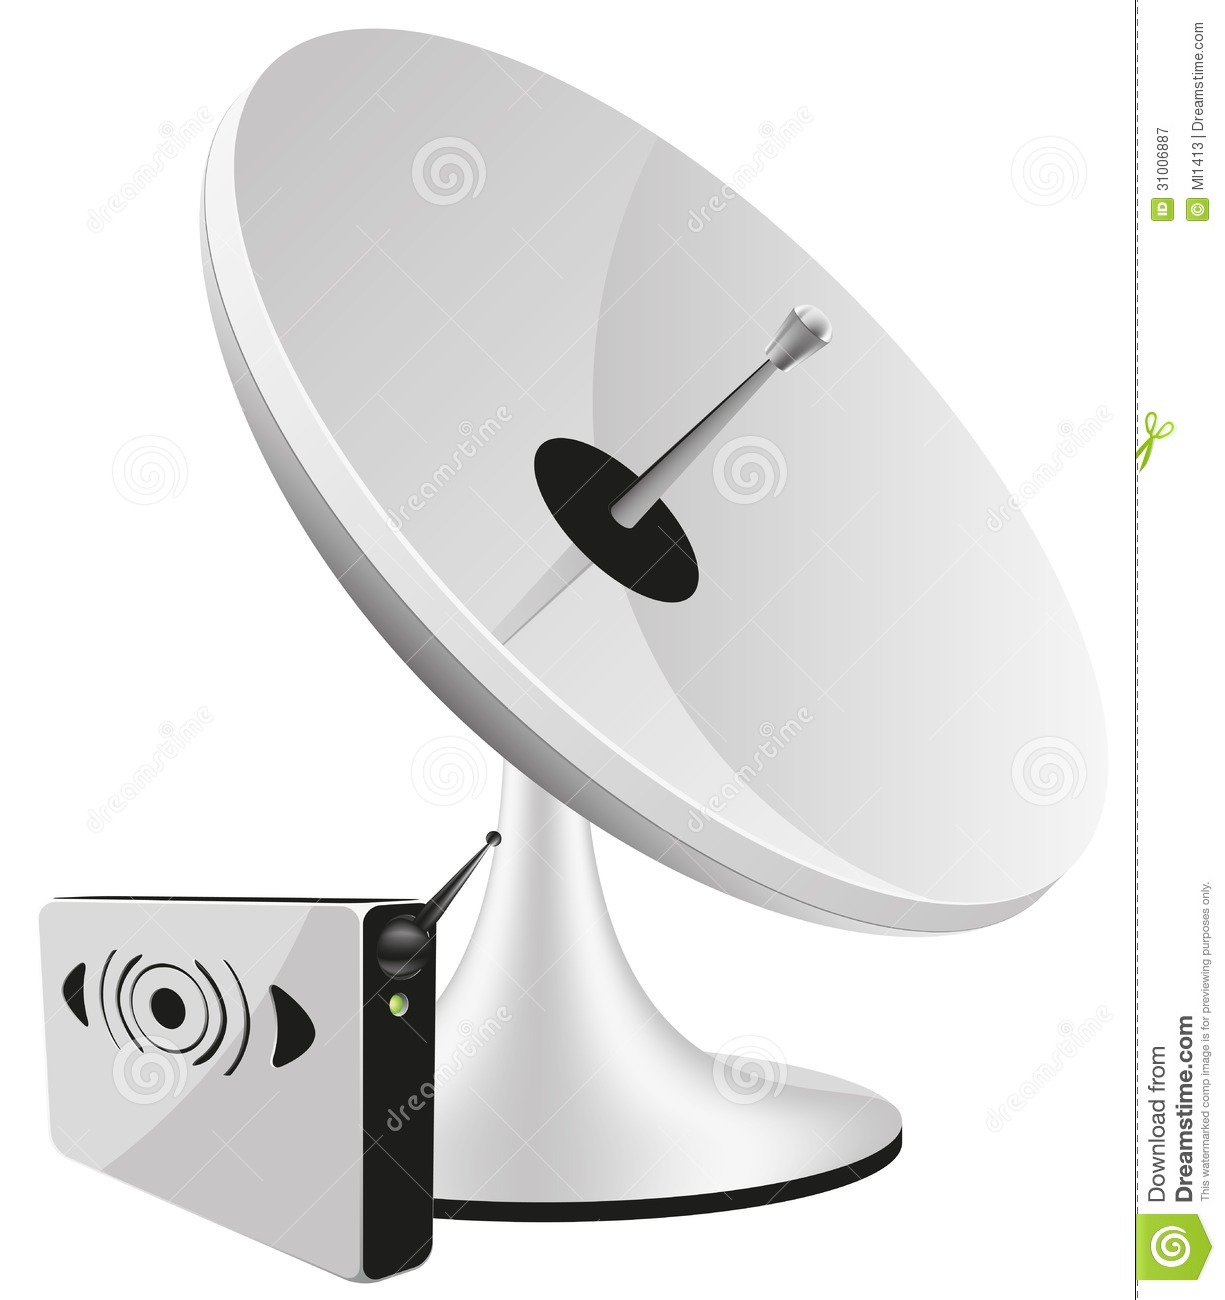 Satellite dish vector stock vector. Image of research ...